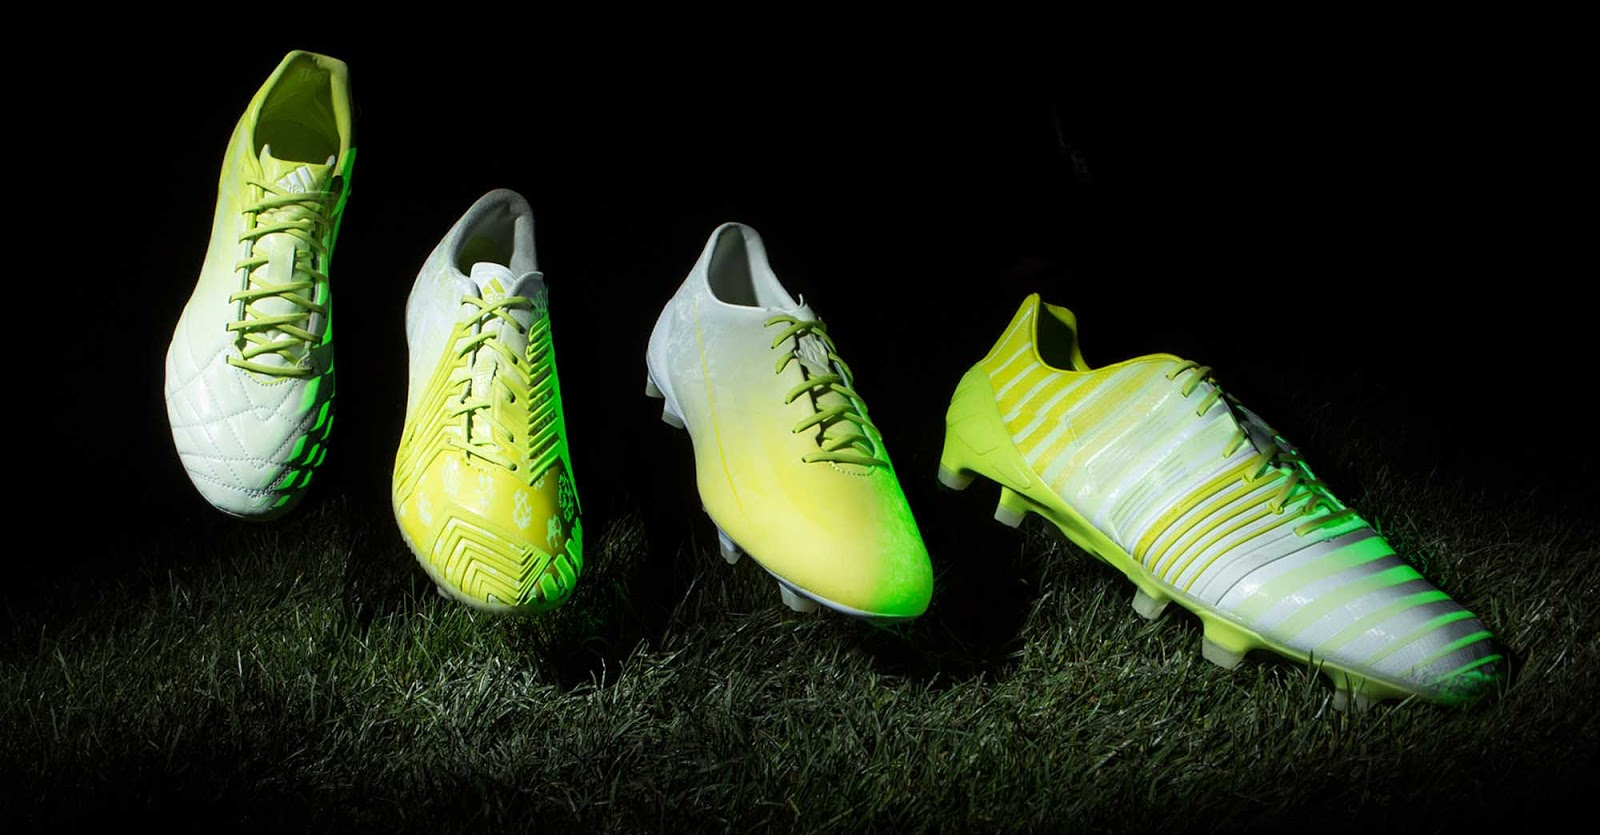 Adidas-2014-Glow-in-the-Dark-Hunt-Pack (1)